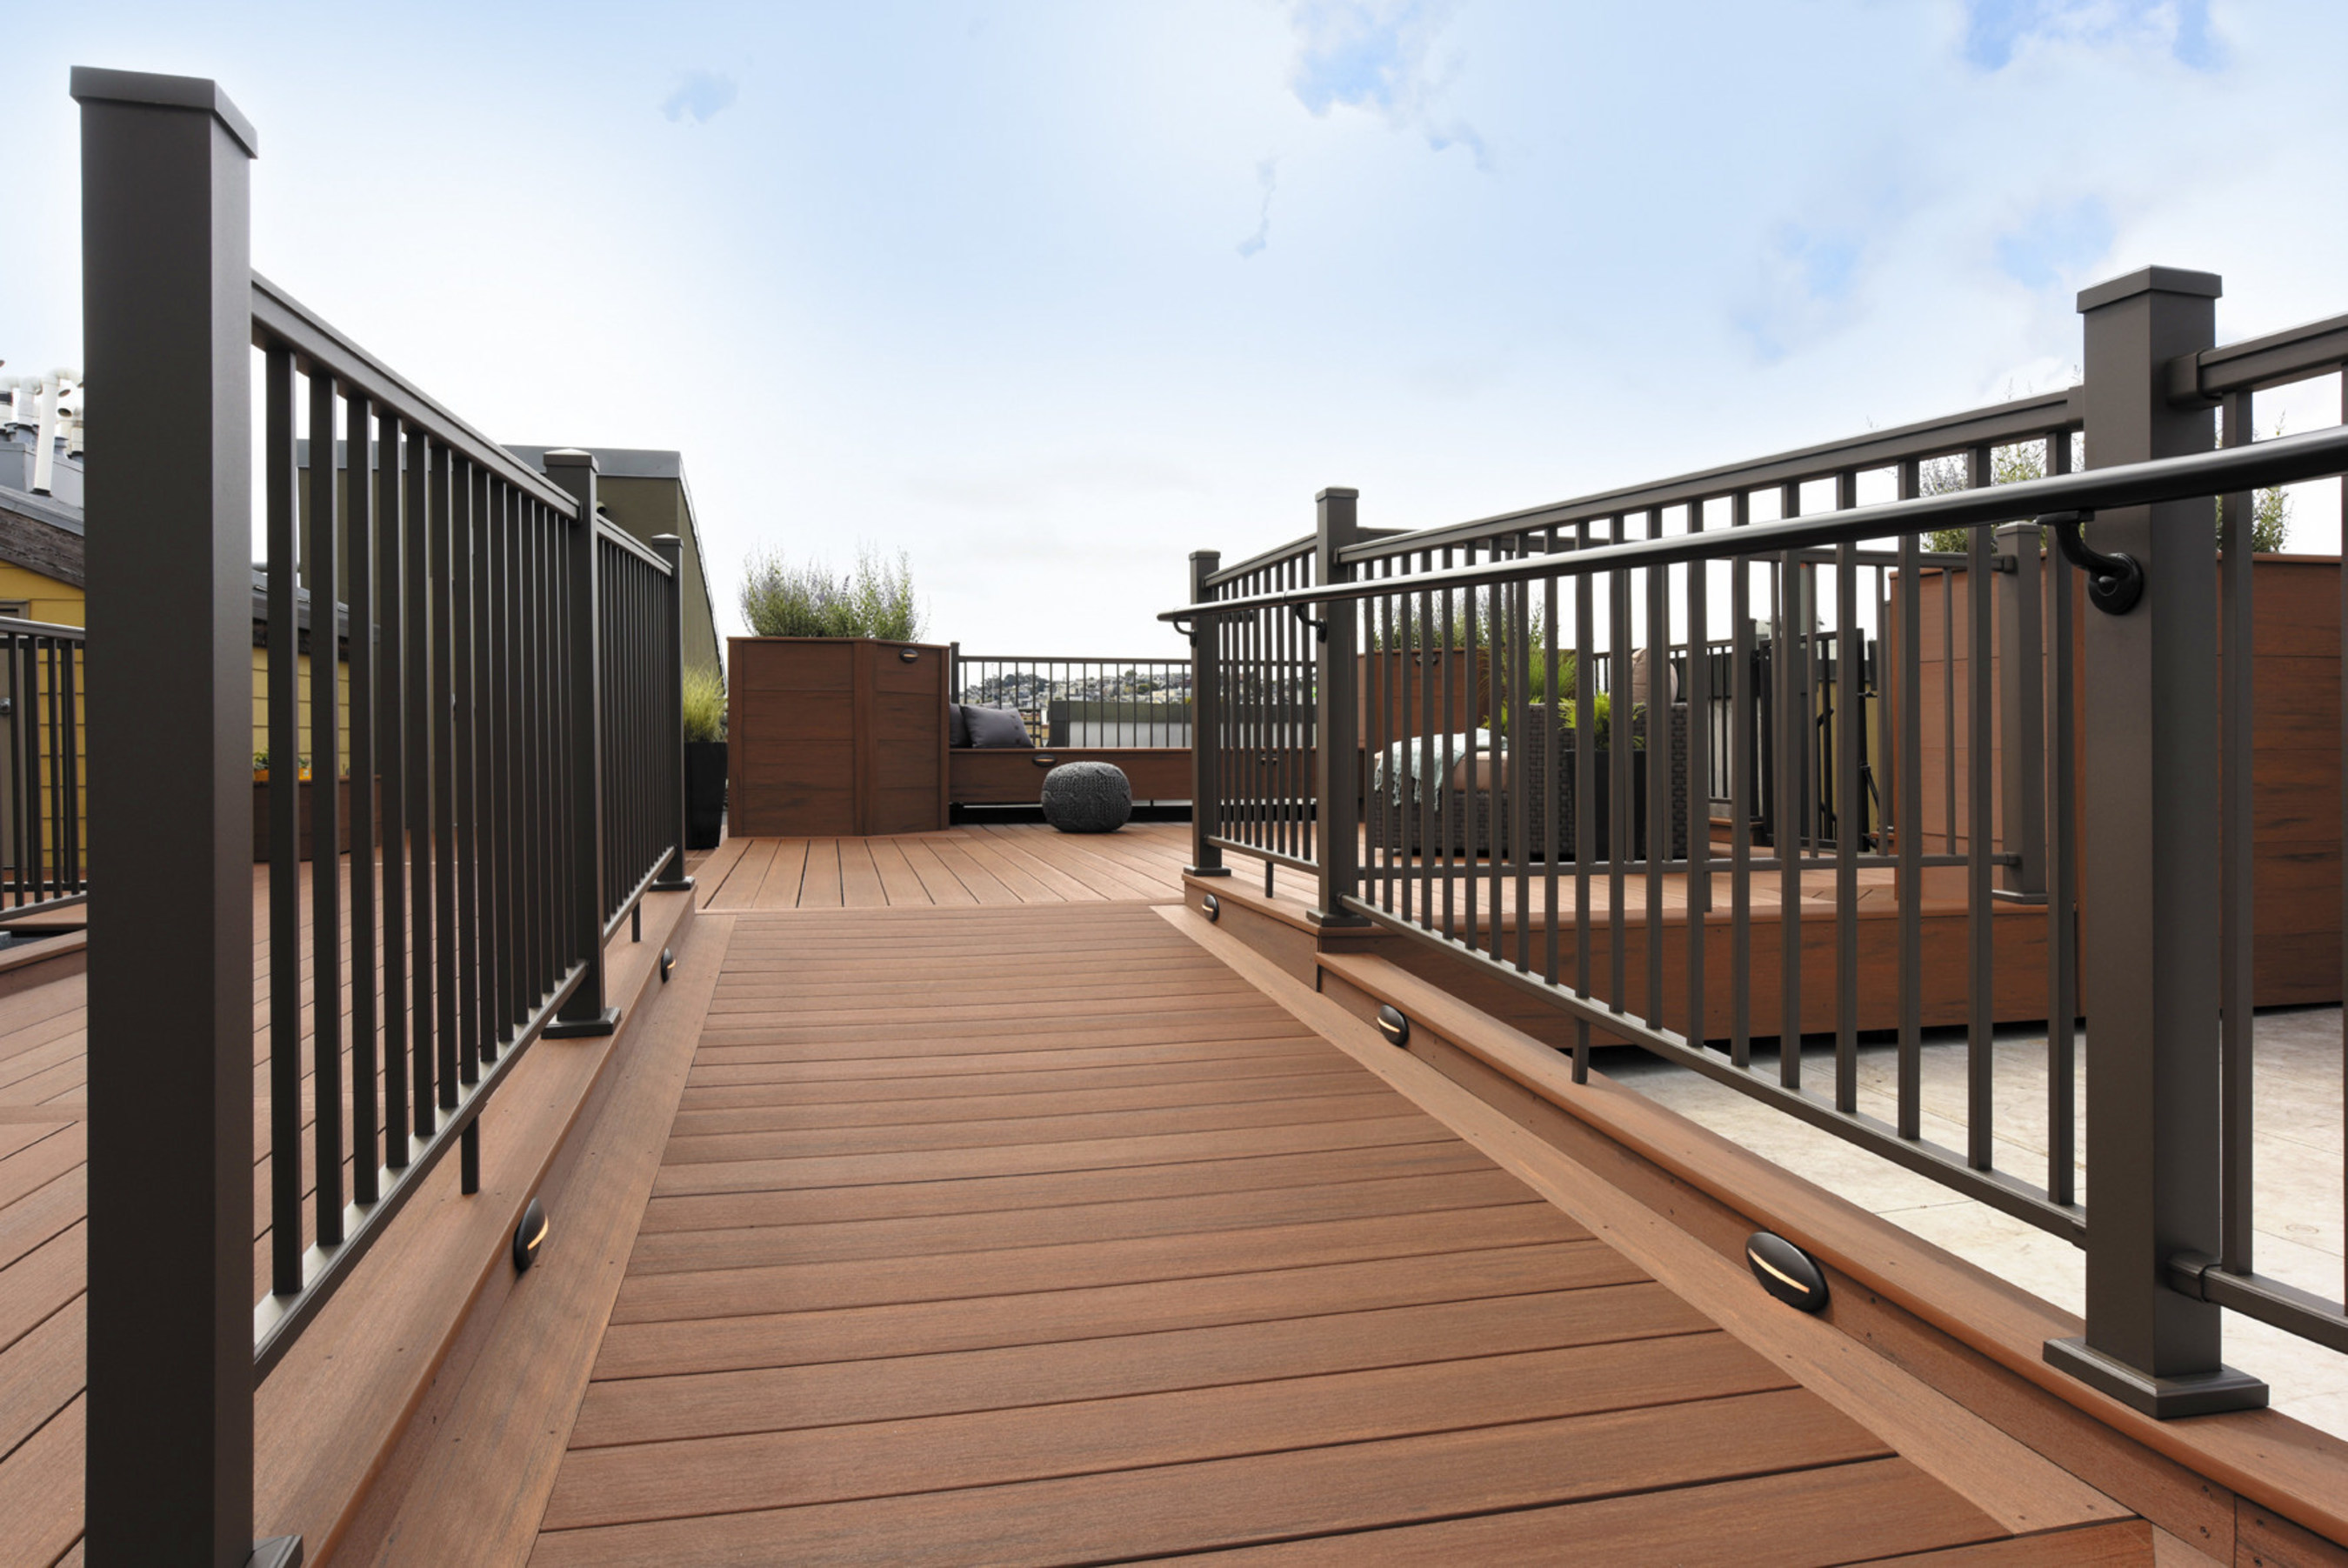 Recently launched Impression Rail(TM) featured in the new textured Bronze color option